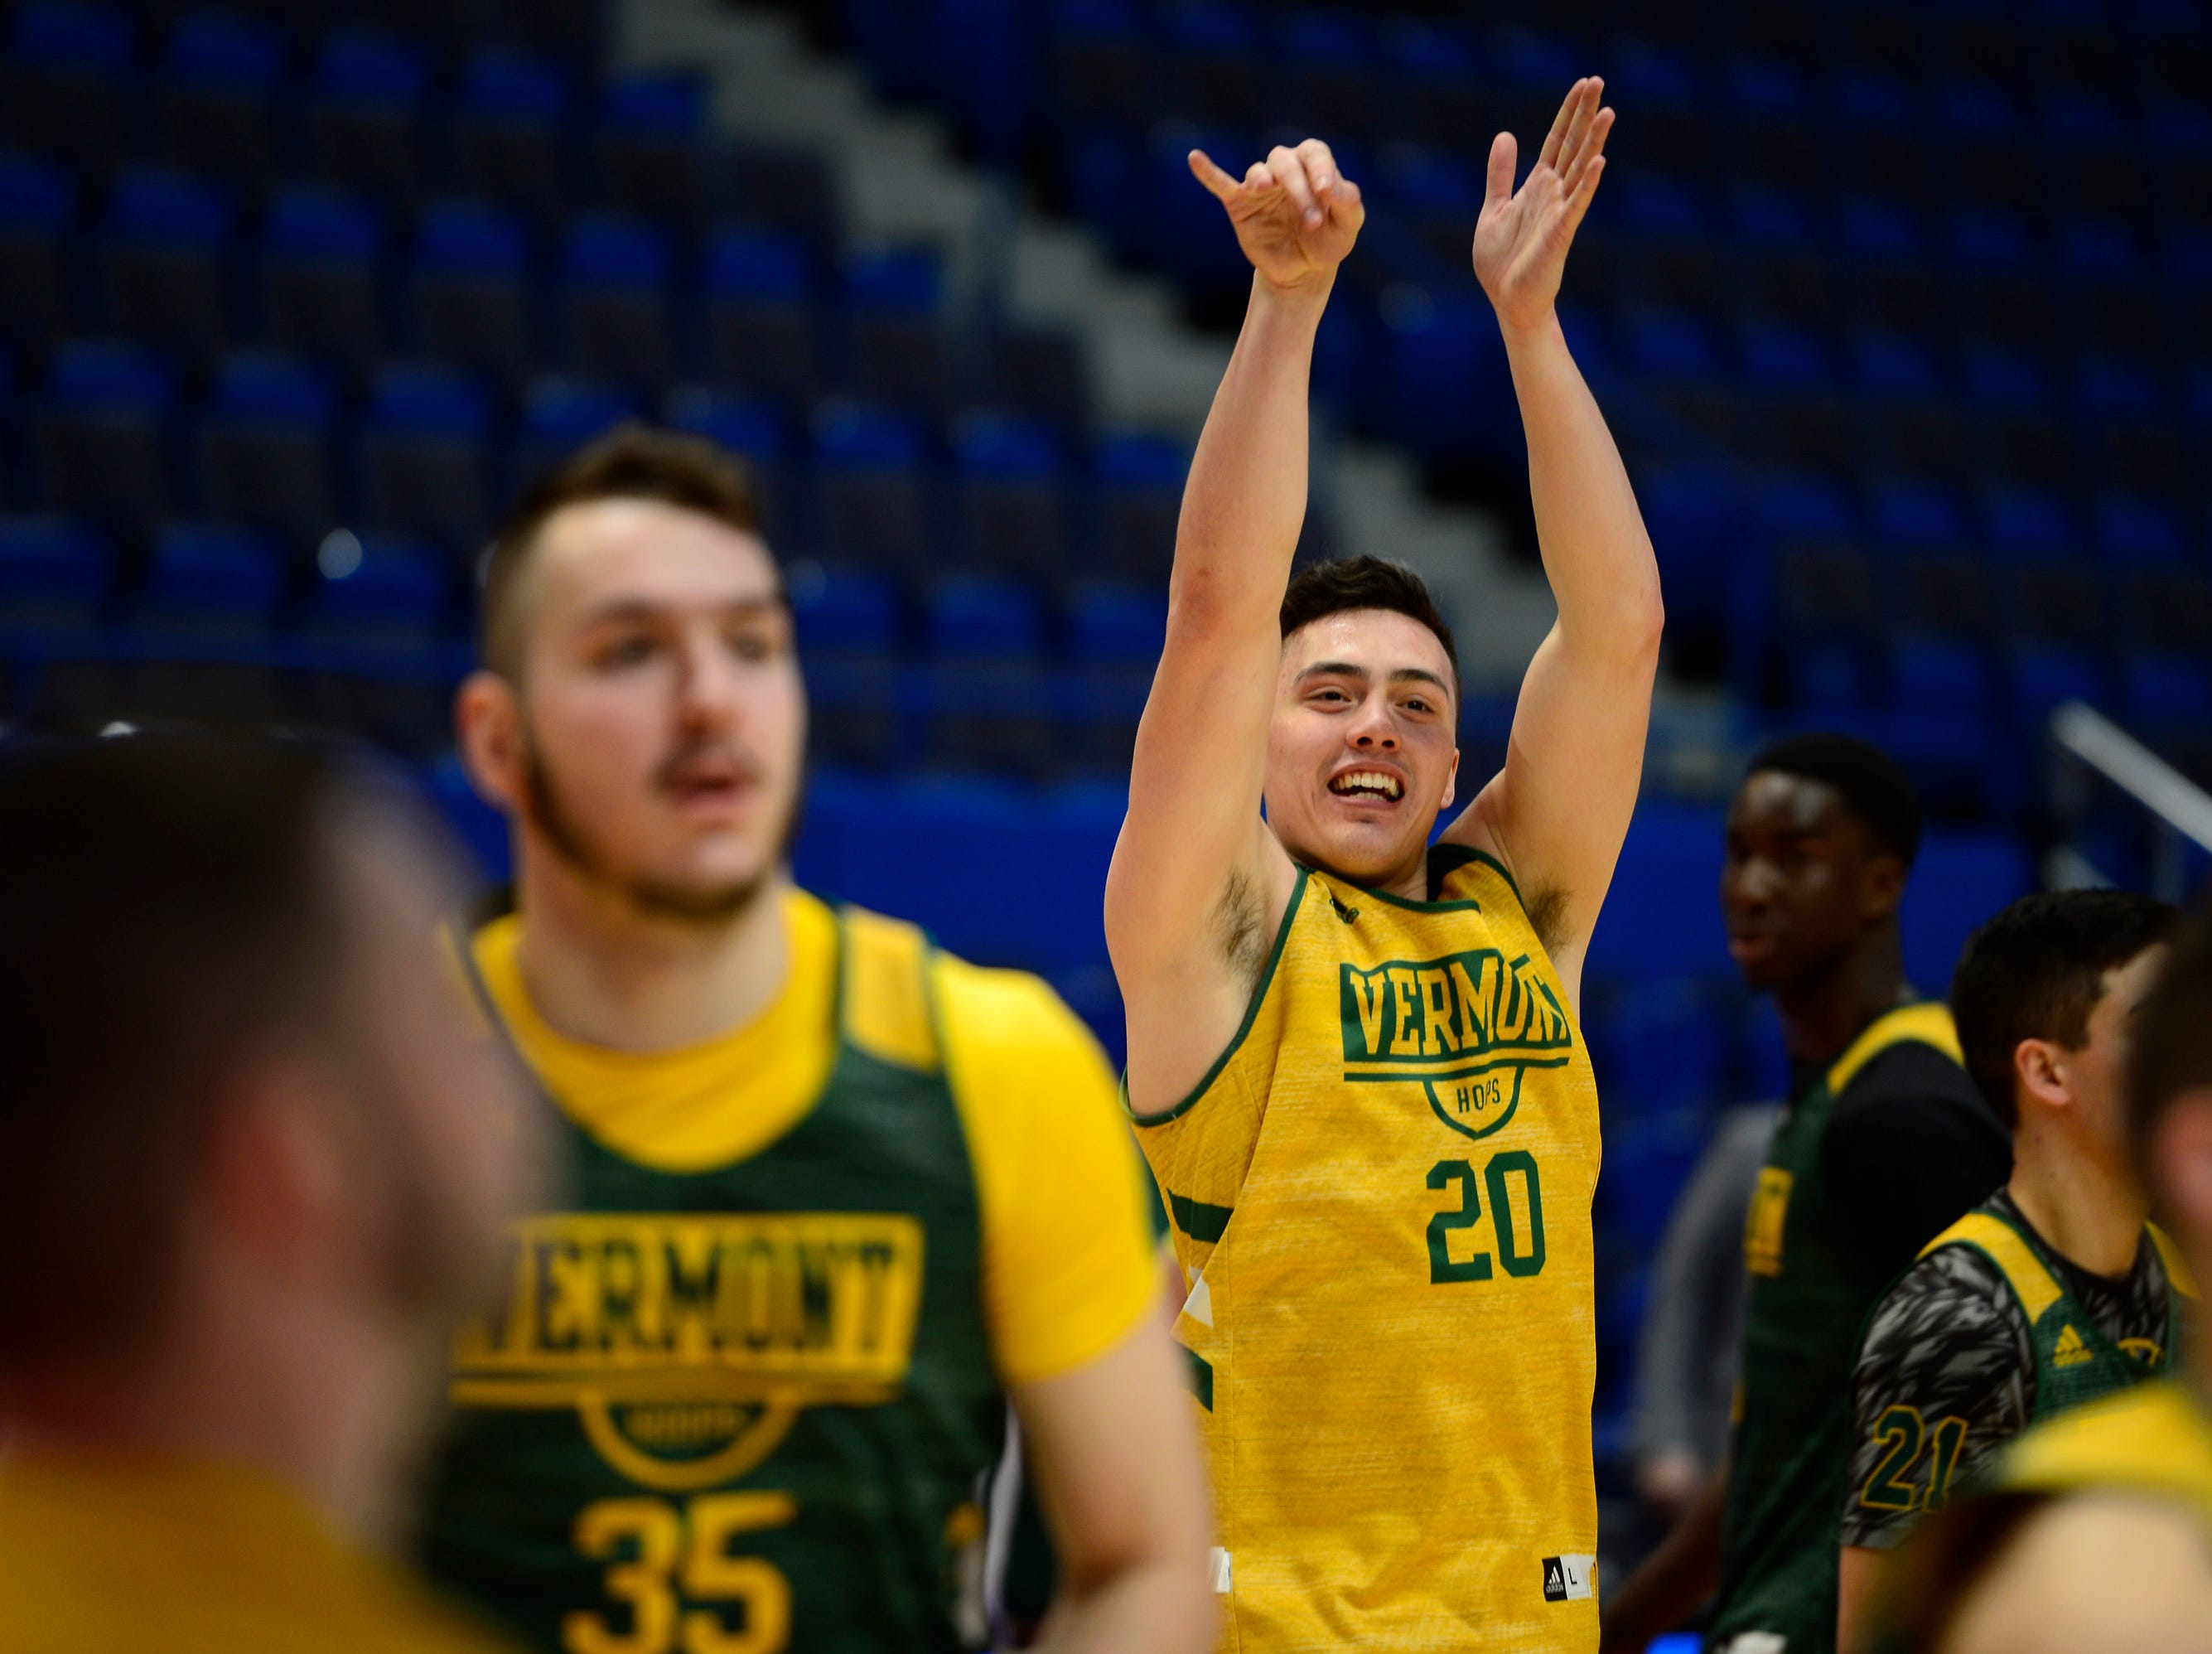 UVM guard Ernie Duncan elevates for a jump shot during practice at the XL Center on Wednesday ahead of the Catamounts' NCAA tournament game in Hartford, Connecticut.